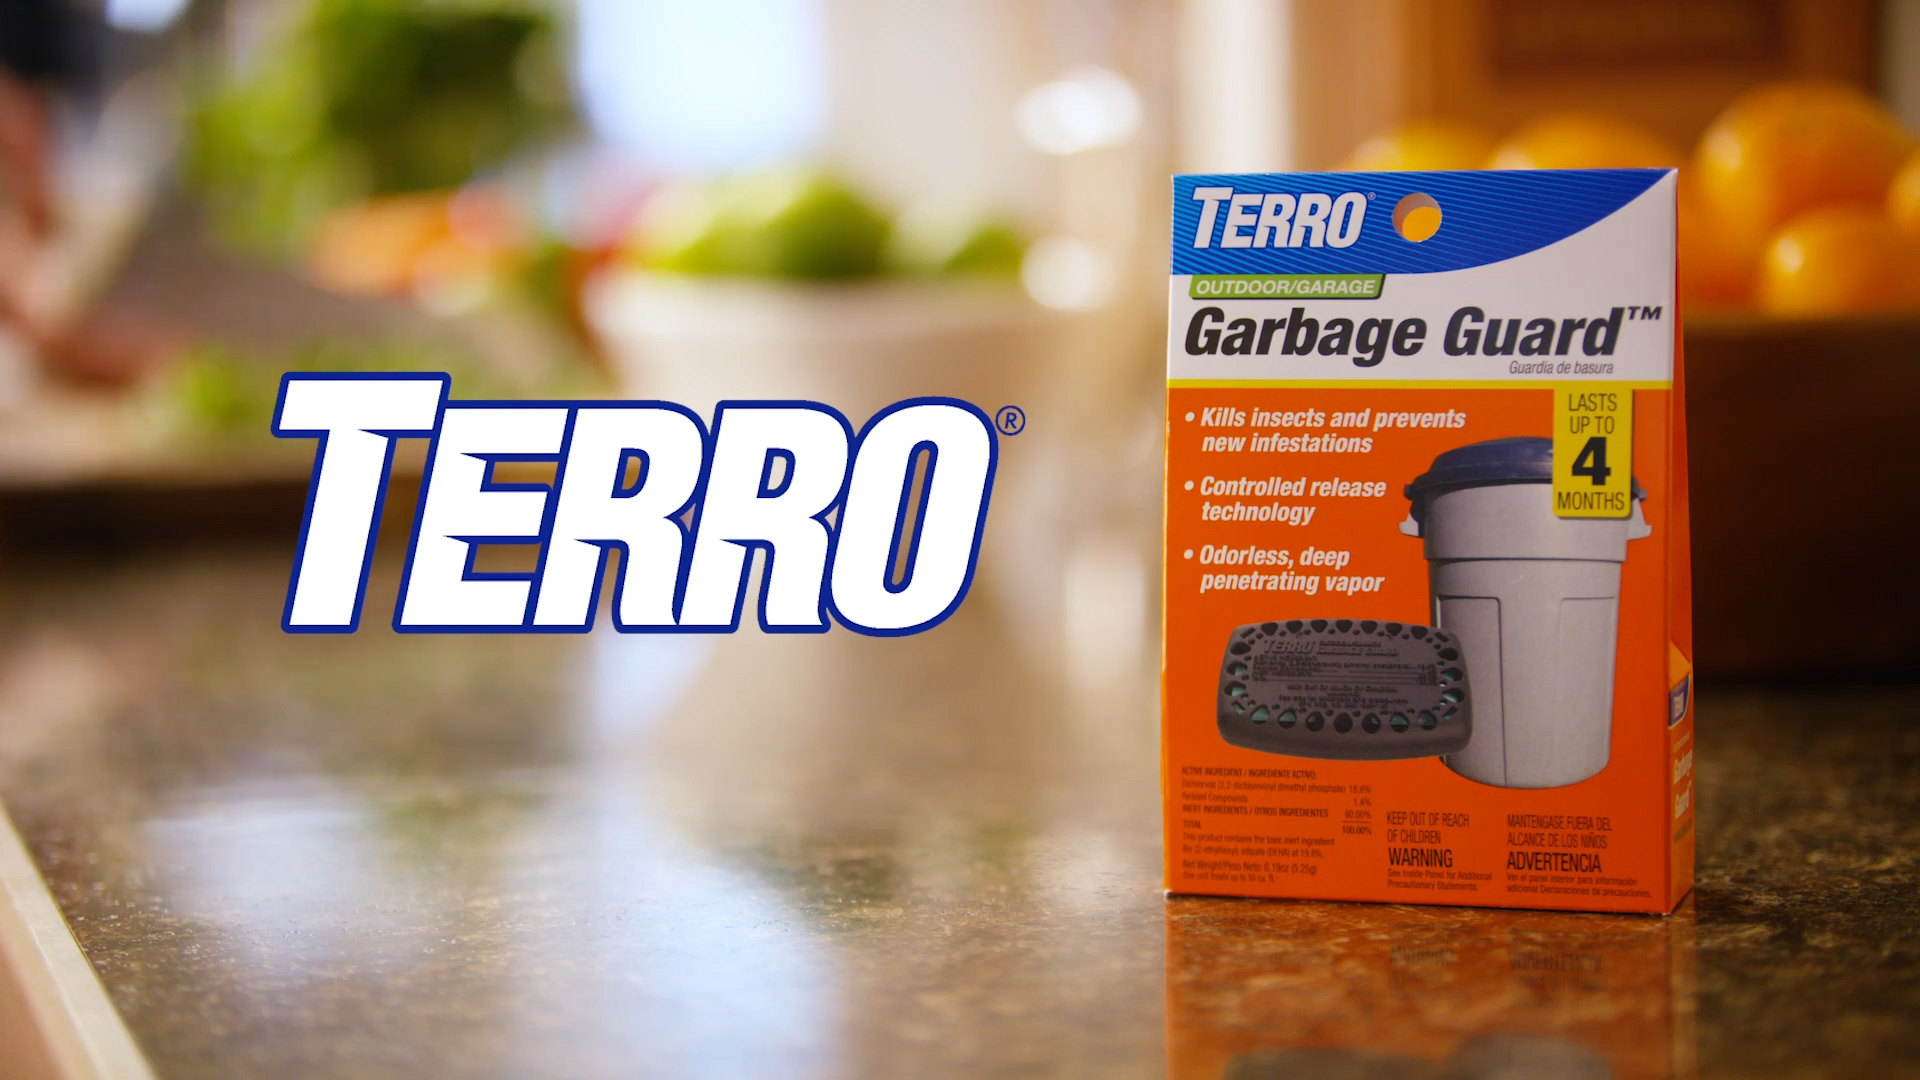 Terro Garbage Guard Get Rid Of Trash Can Insects Video Webstaurantstore